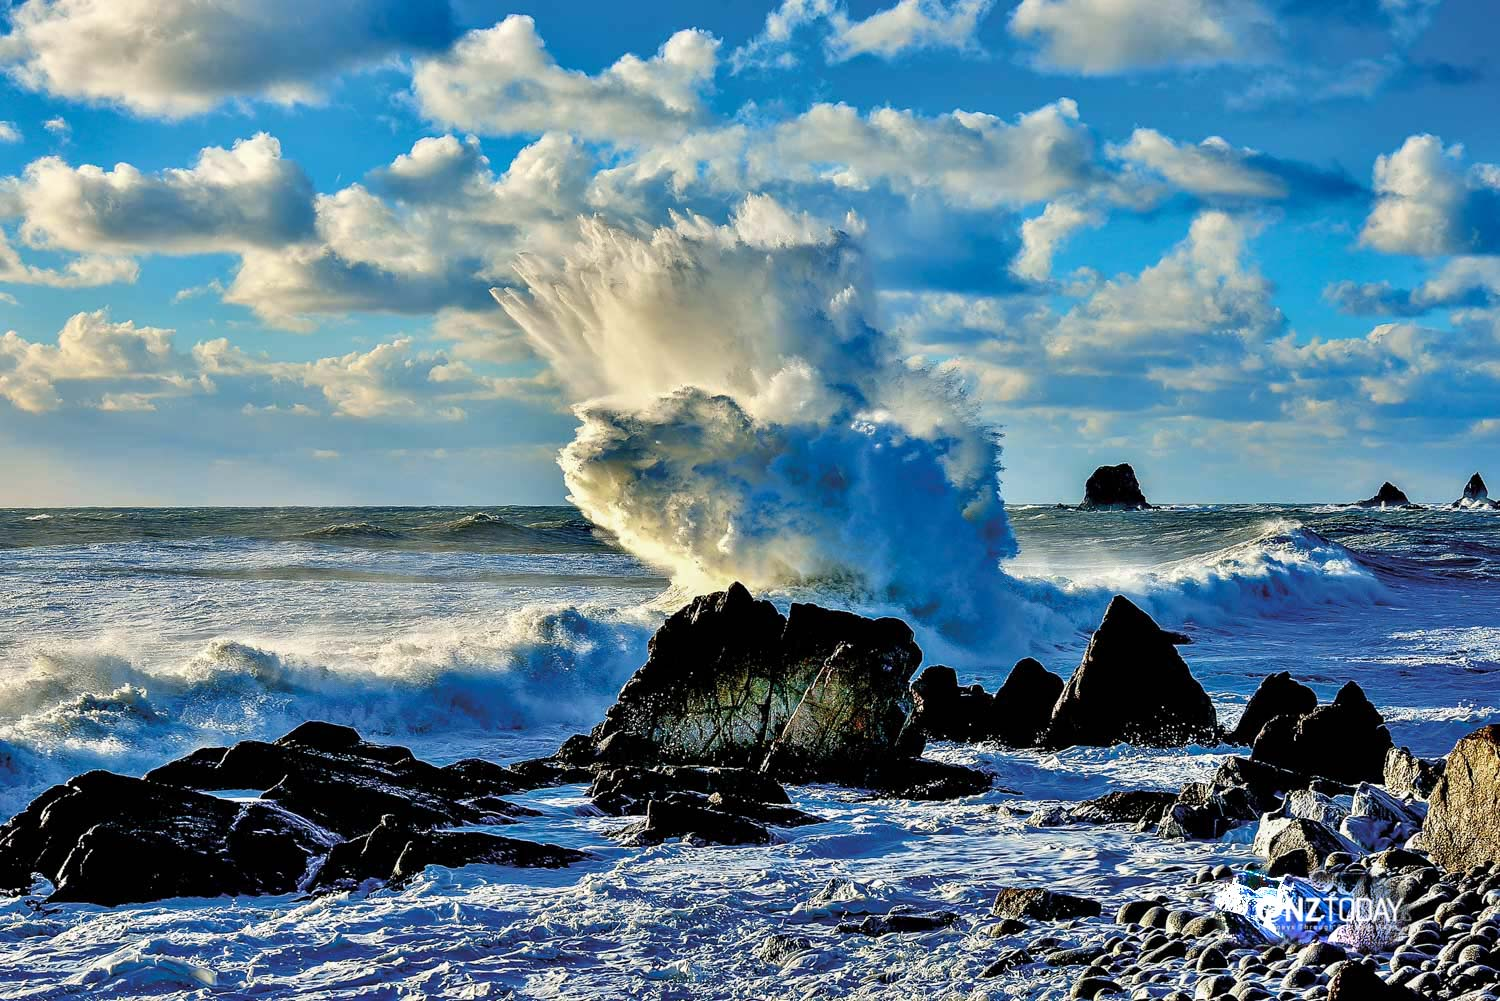 Cape Foulwind – named by Captain Cook – is where the Tasman Sea first hits New Zealand. Photo by Peter Coburn